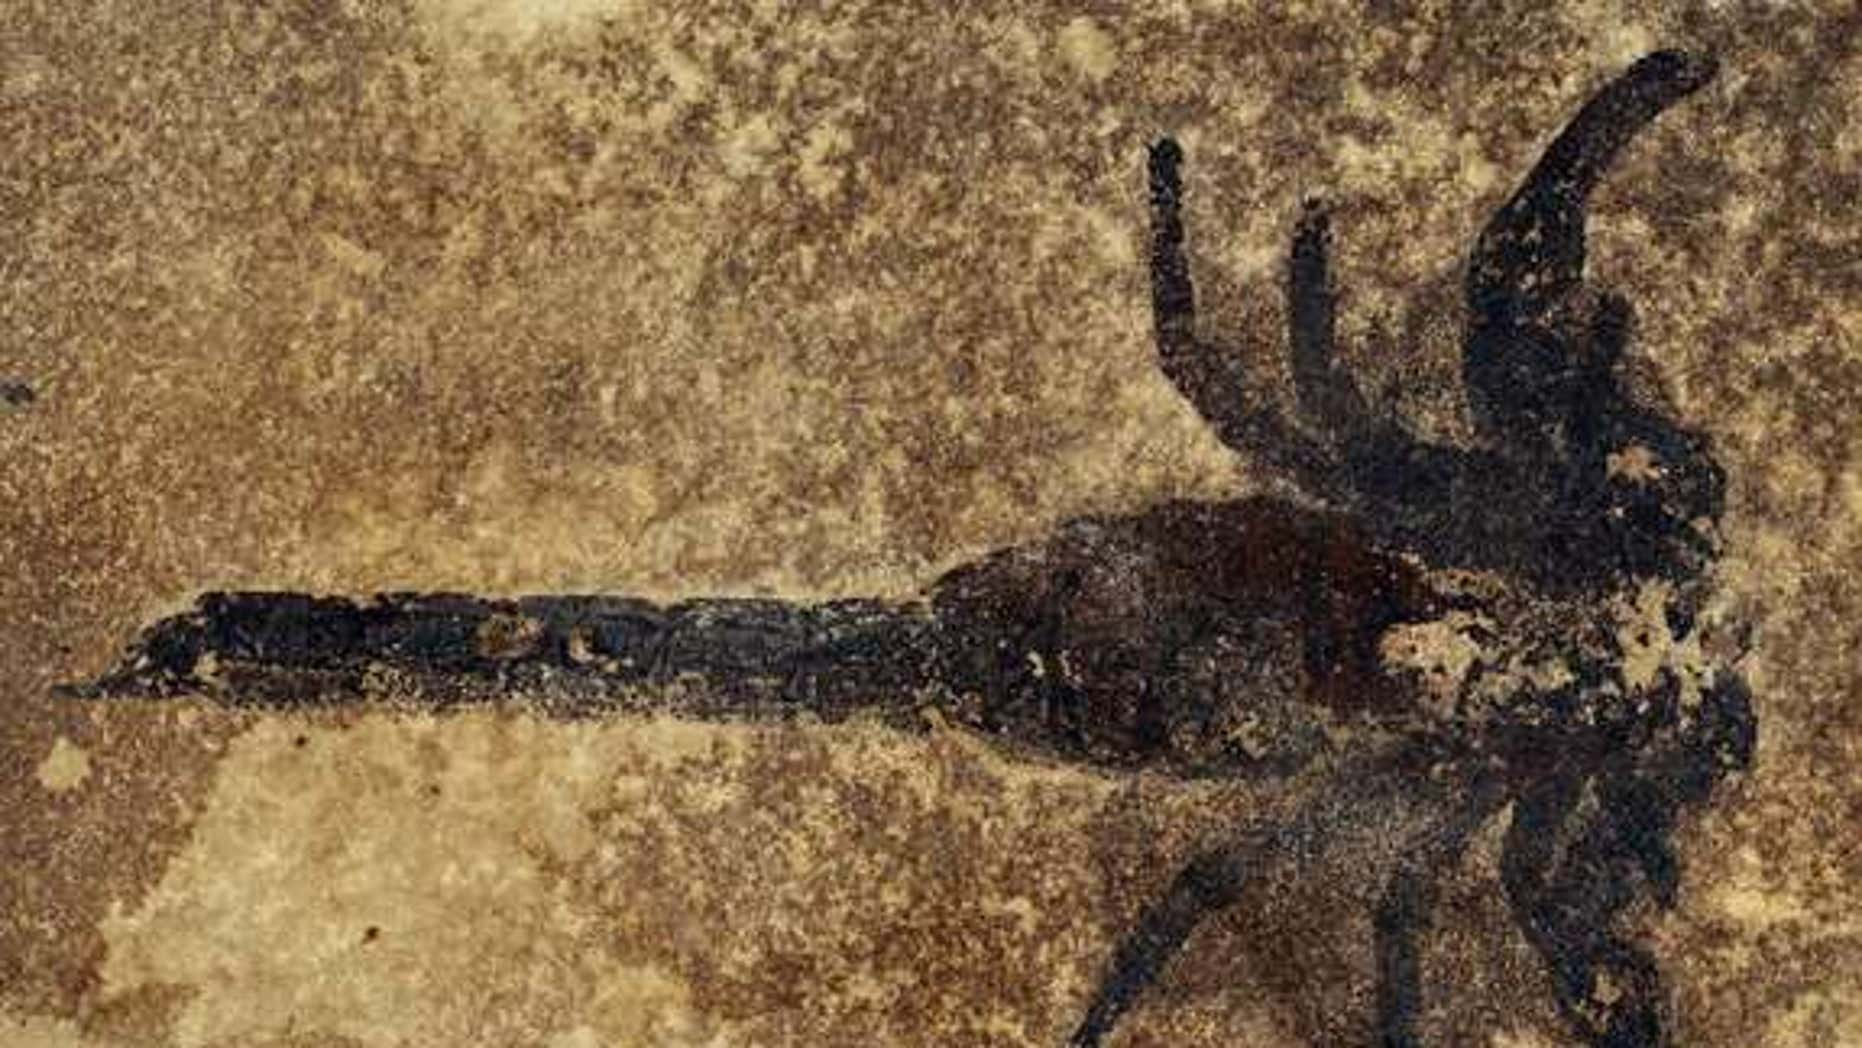 A specimen of the new scorpion species Eramoscorpius brucensis, which lived about 430 million years ago, making it among the earliest scorpions. The species probably lived in water, but it had feet that would have allowed it to scuttle about on